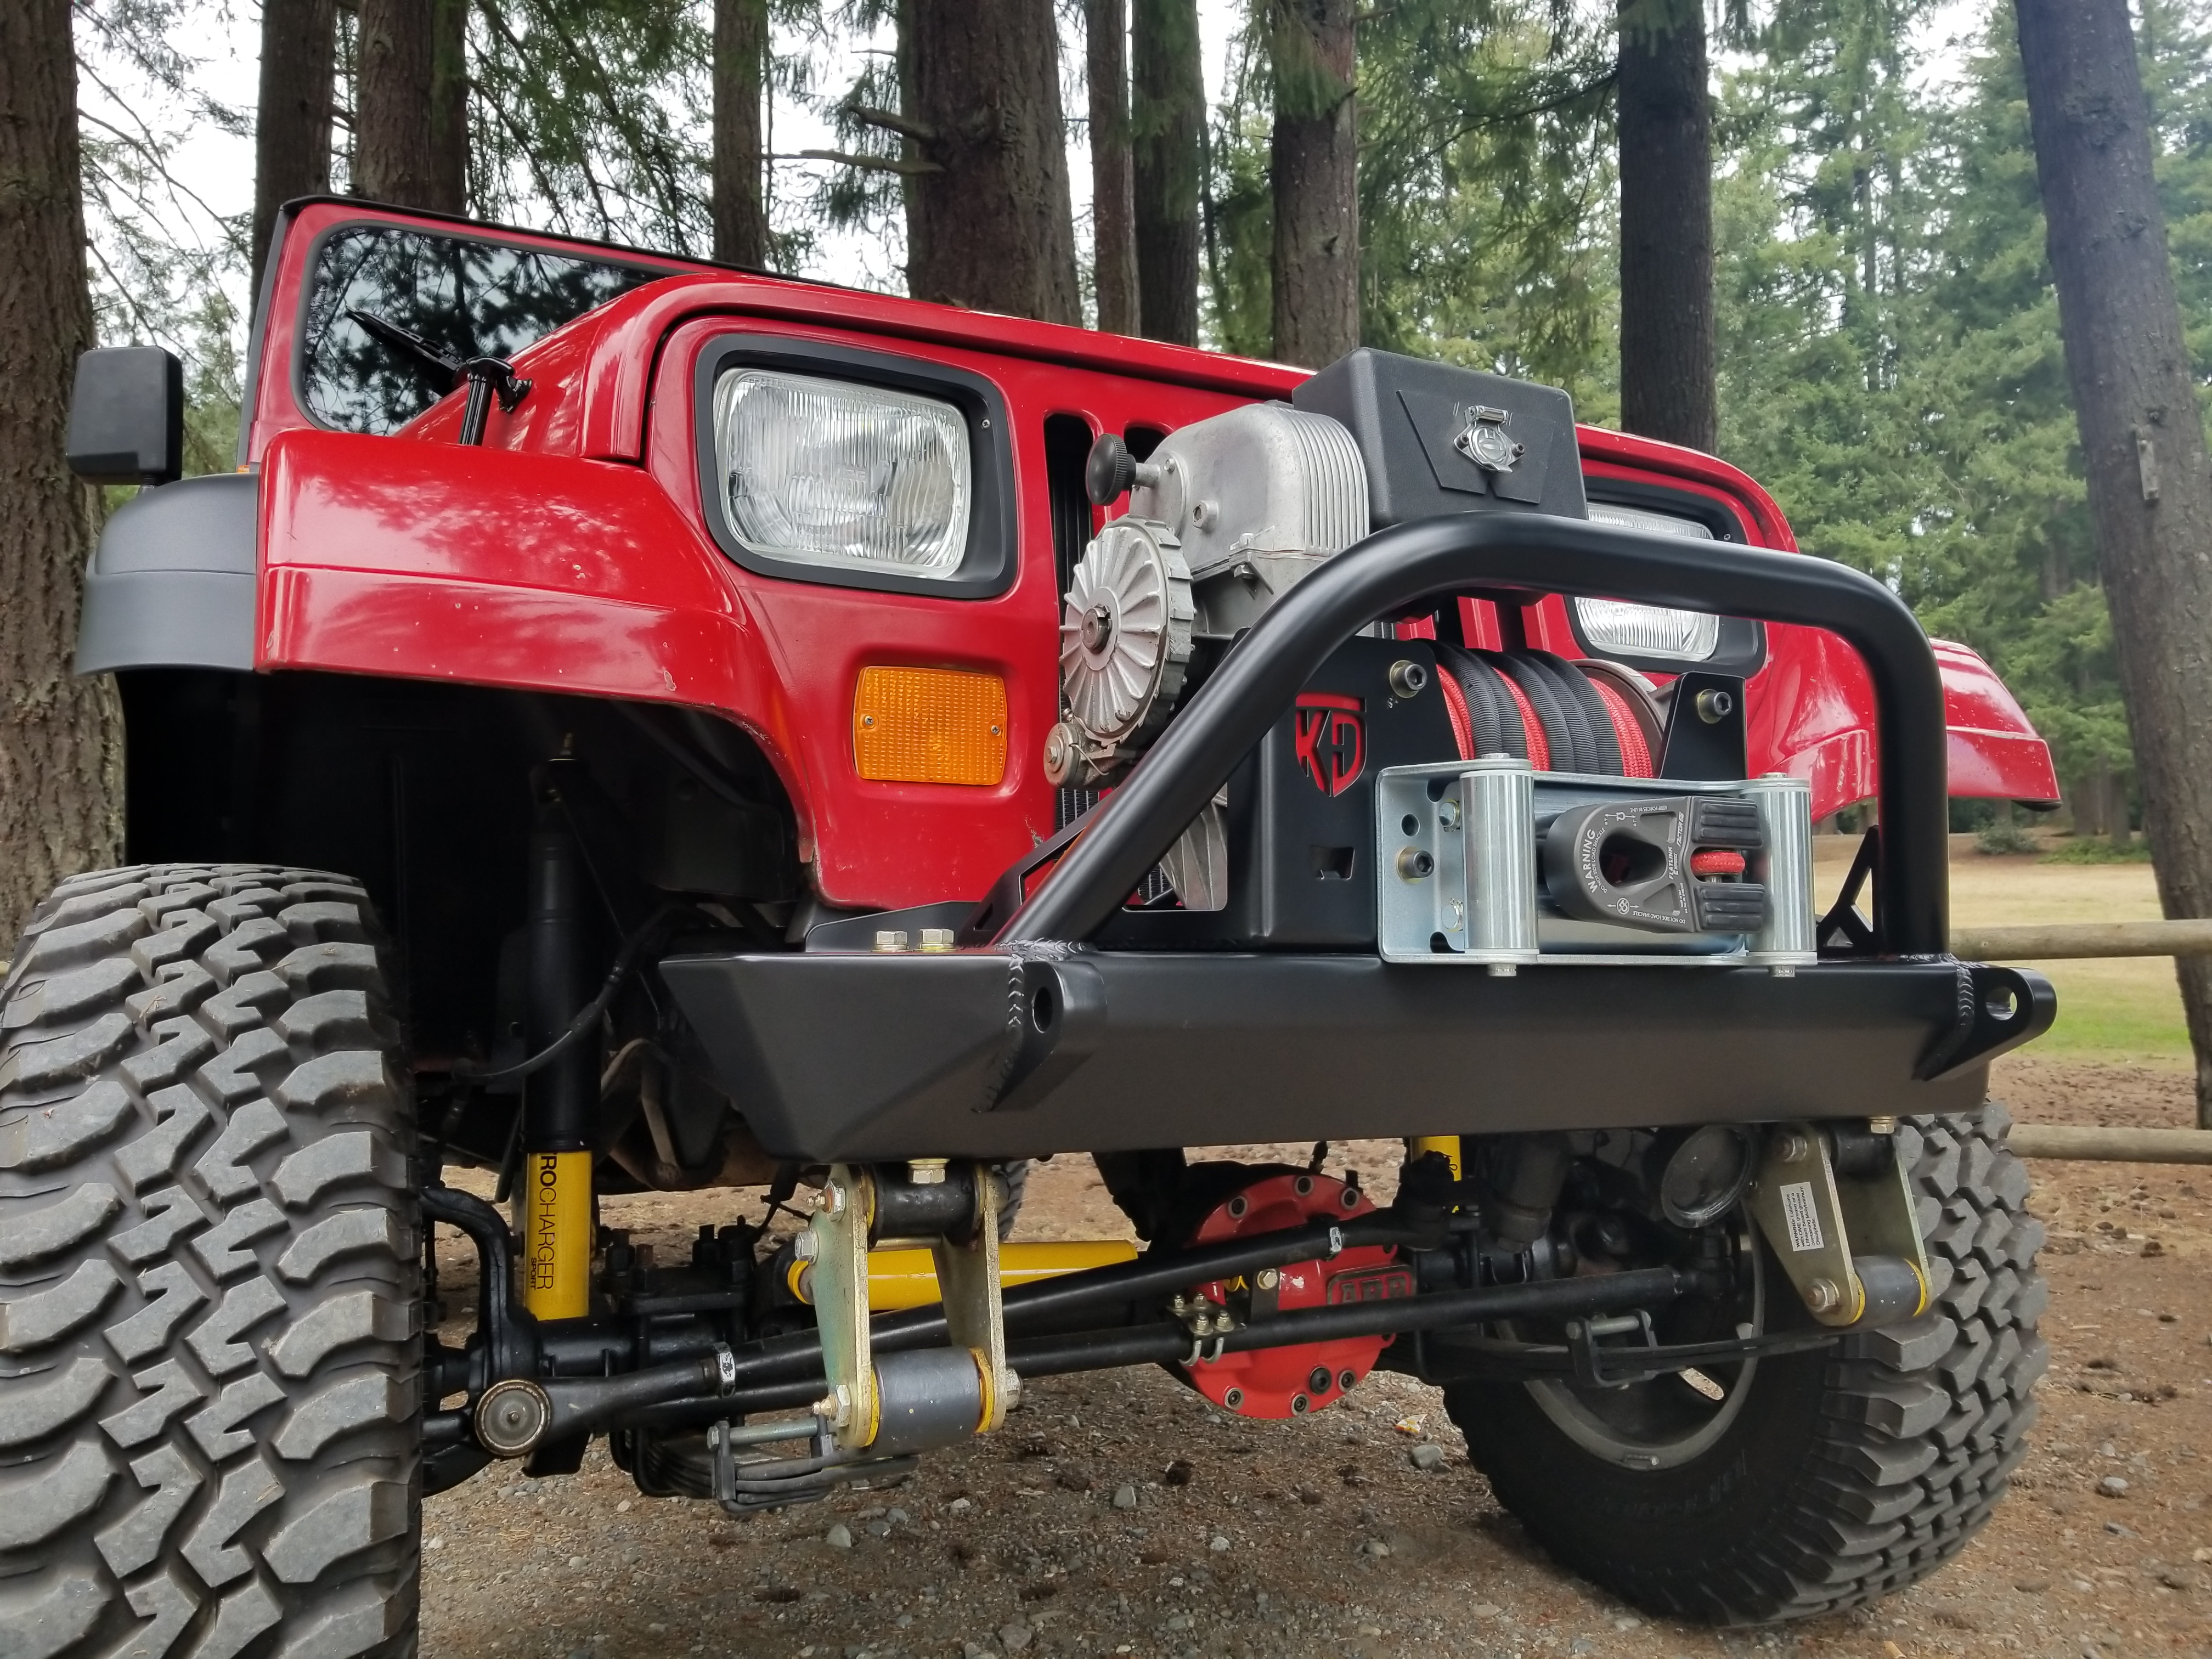 87-95 YJ Front Rock Crawler Bumper with Hoop